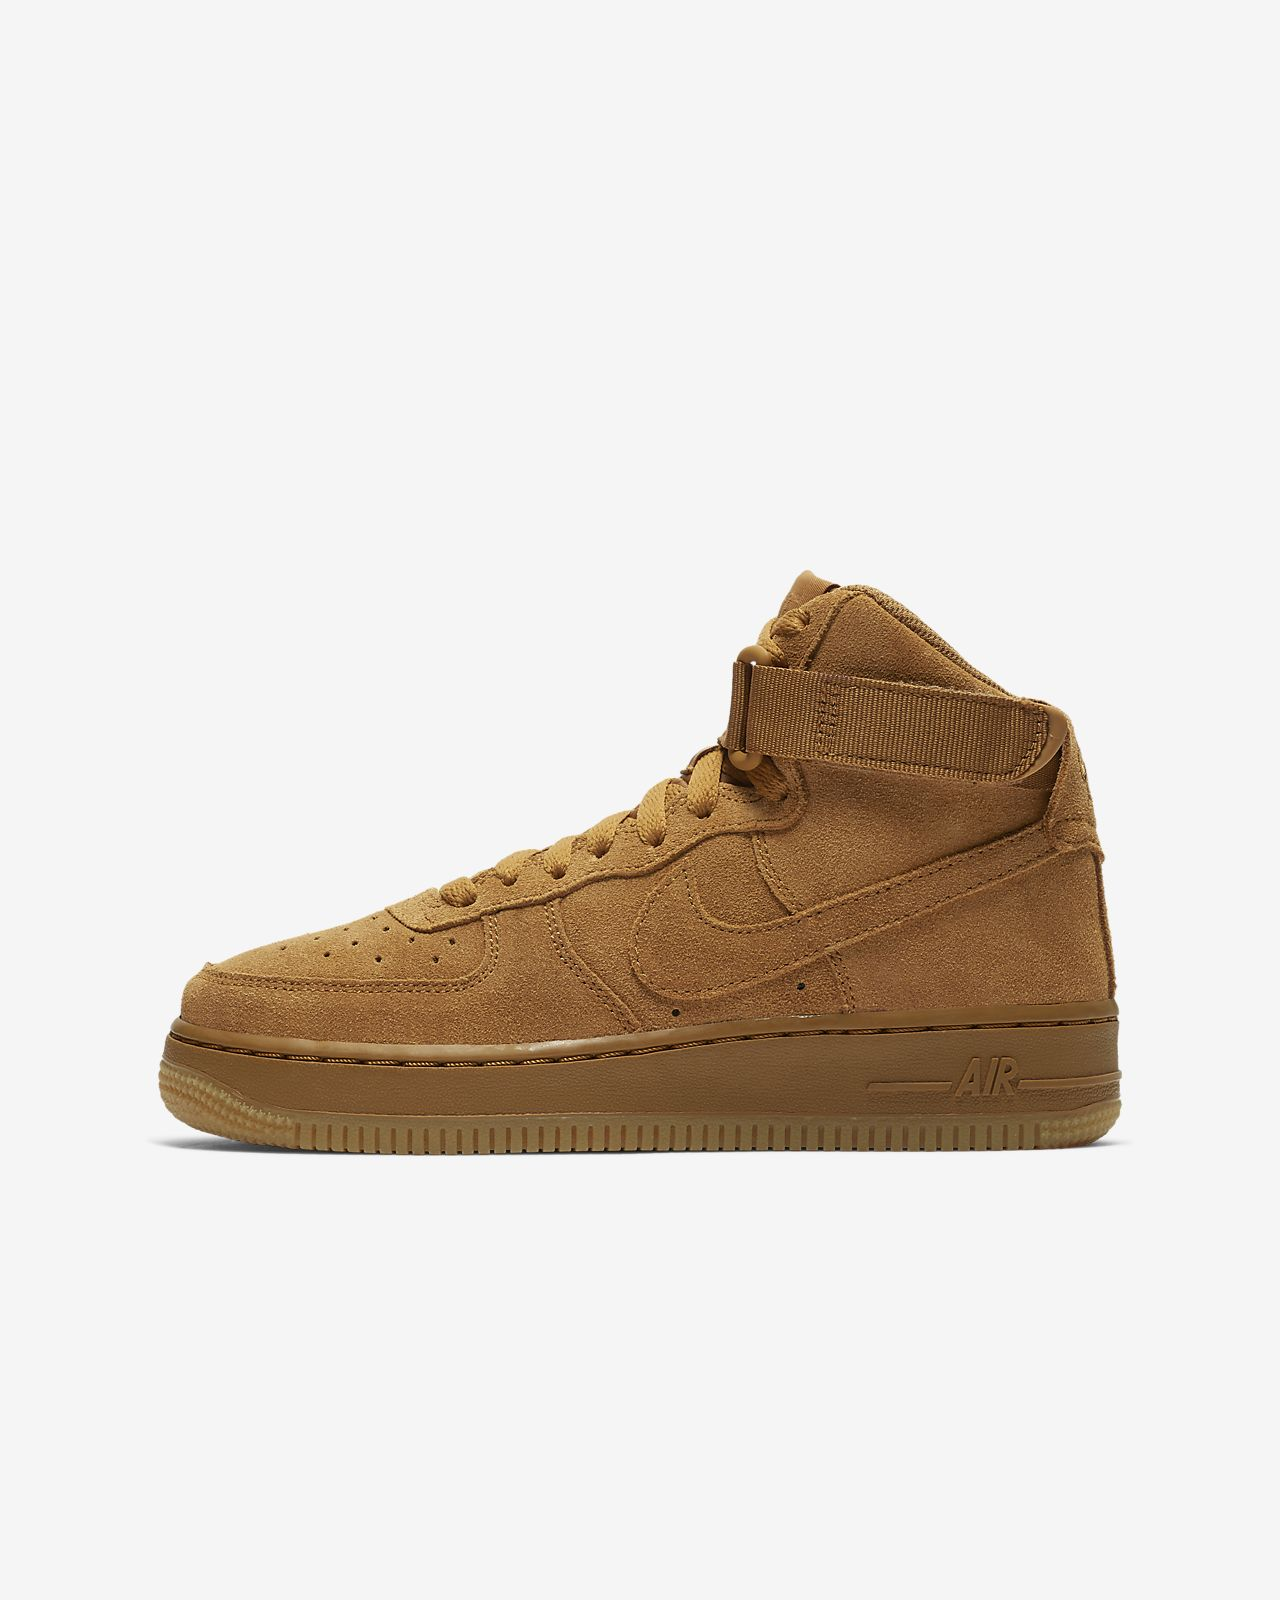 Nike Air Force 1 High LV8 Kinderschoen